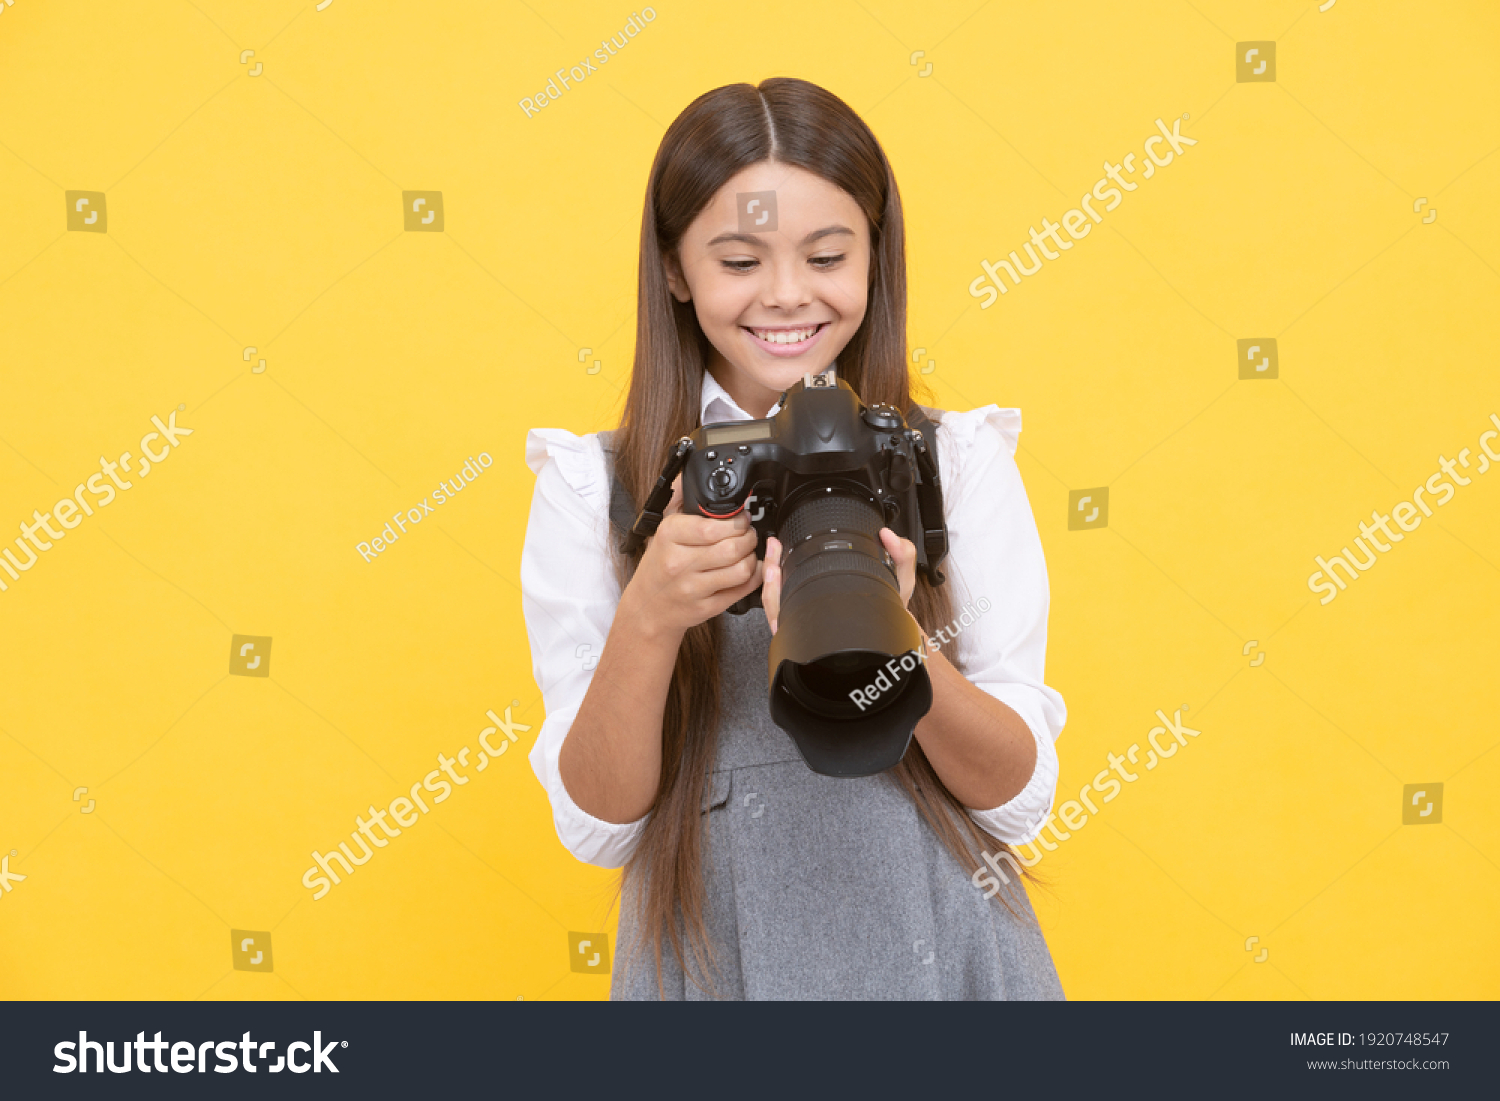 nice shot. school of photography. hobby or future career. photographer beginner with modern camera. making video. childhood. teen girl taking photo. kid use digital camera. happy child photographing. #1920748547